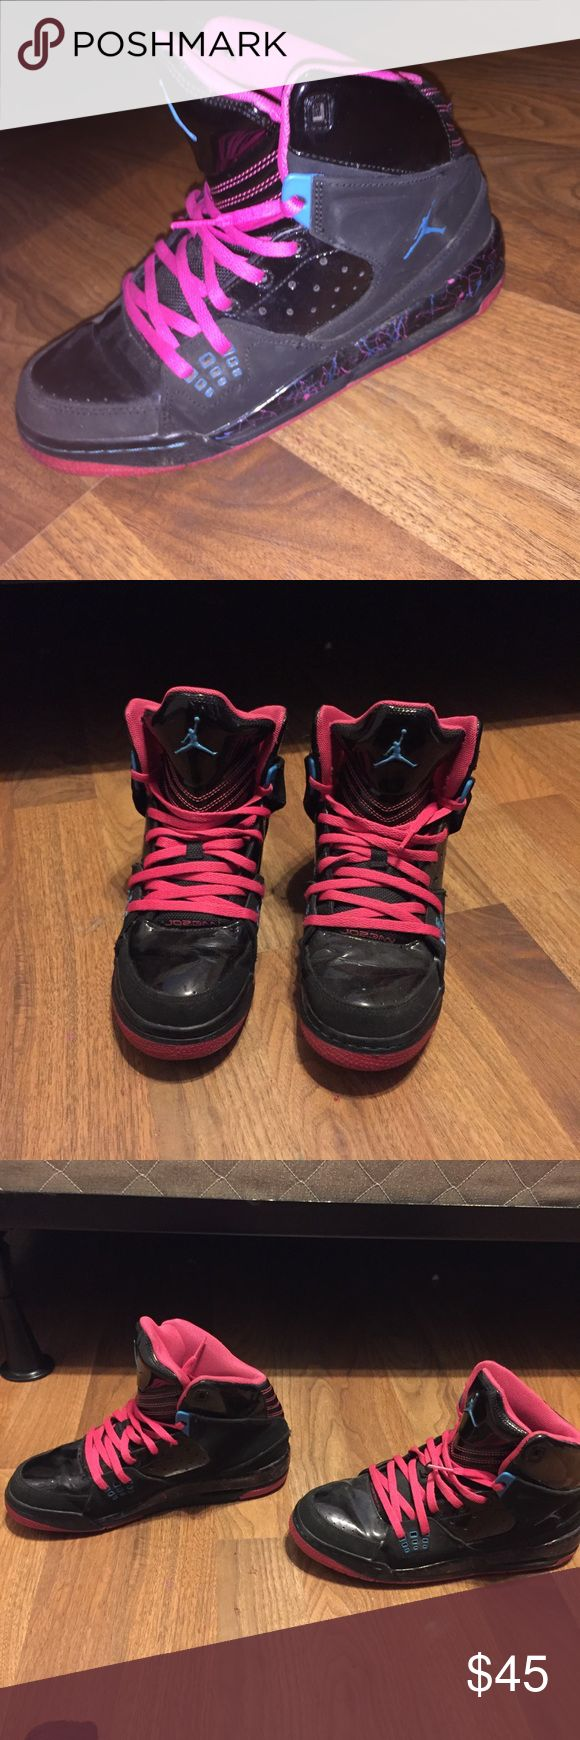 PINK AND BLACK JORDAN BASKETBALL SNEAKERS pink and black jordan sneakers with splatter paint design. only worn a few times. in great condition. size 6 Air Jordan Shoes Athletic Shoes